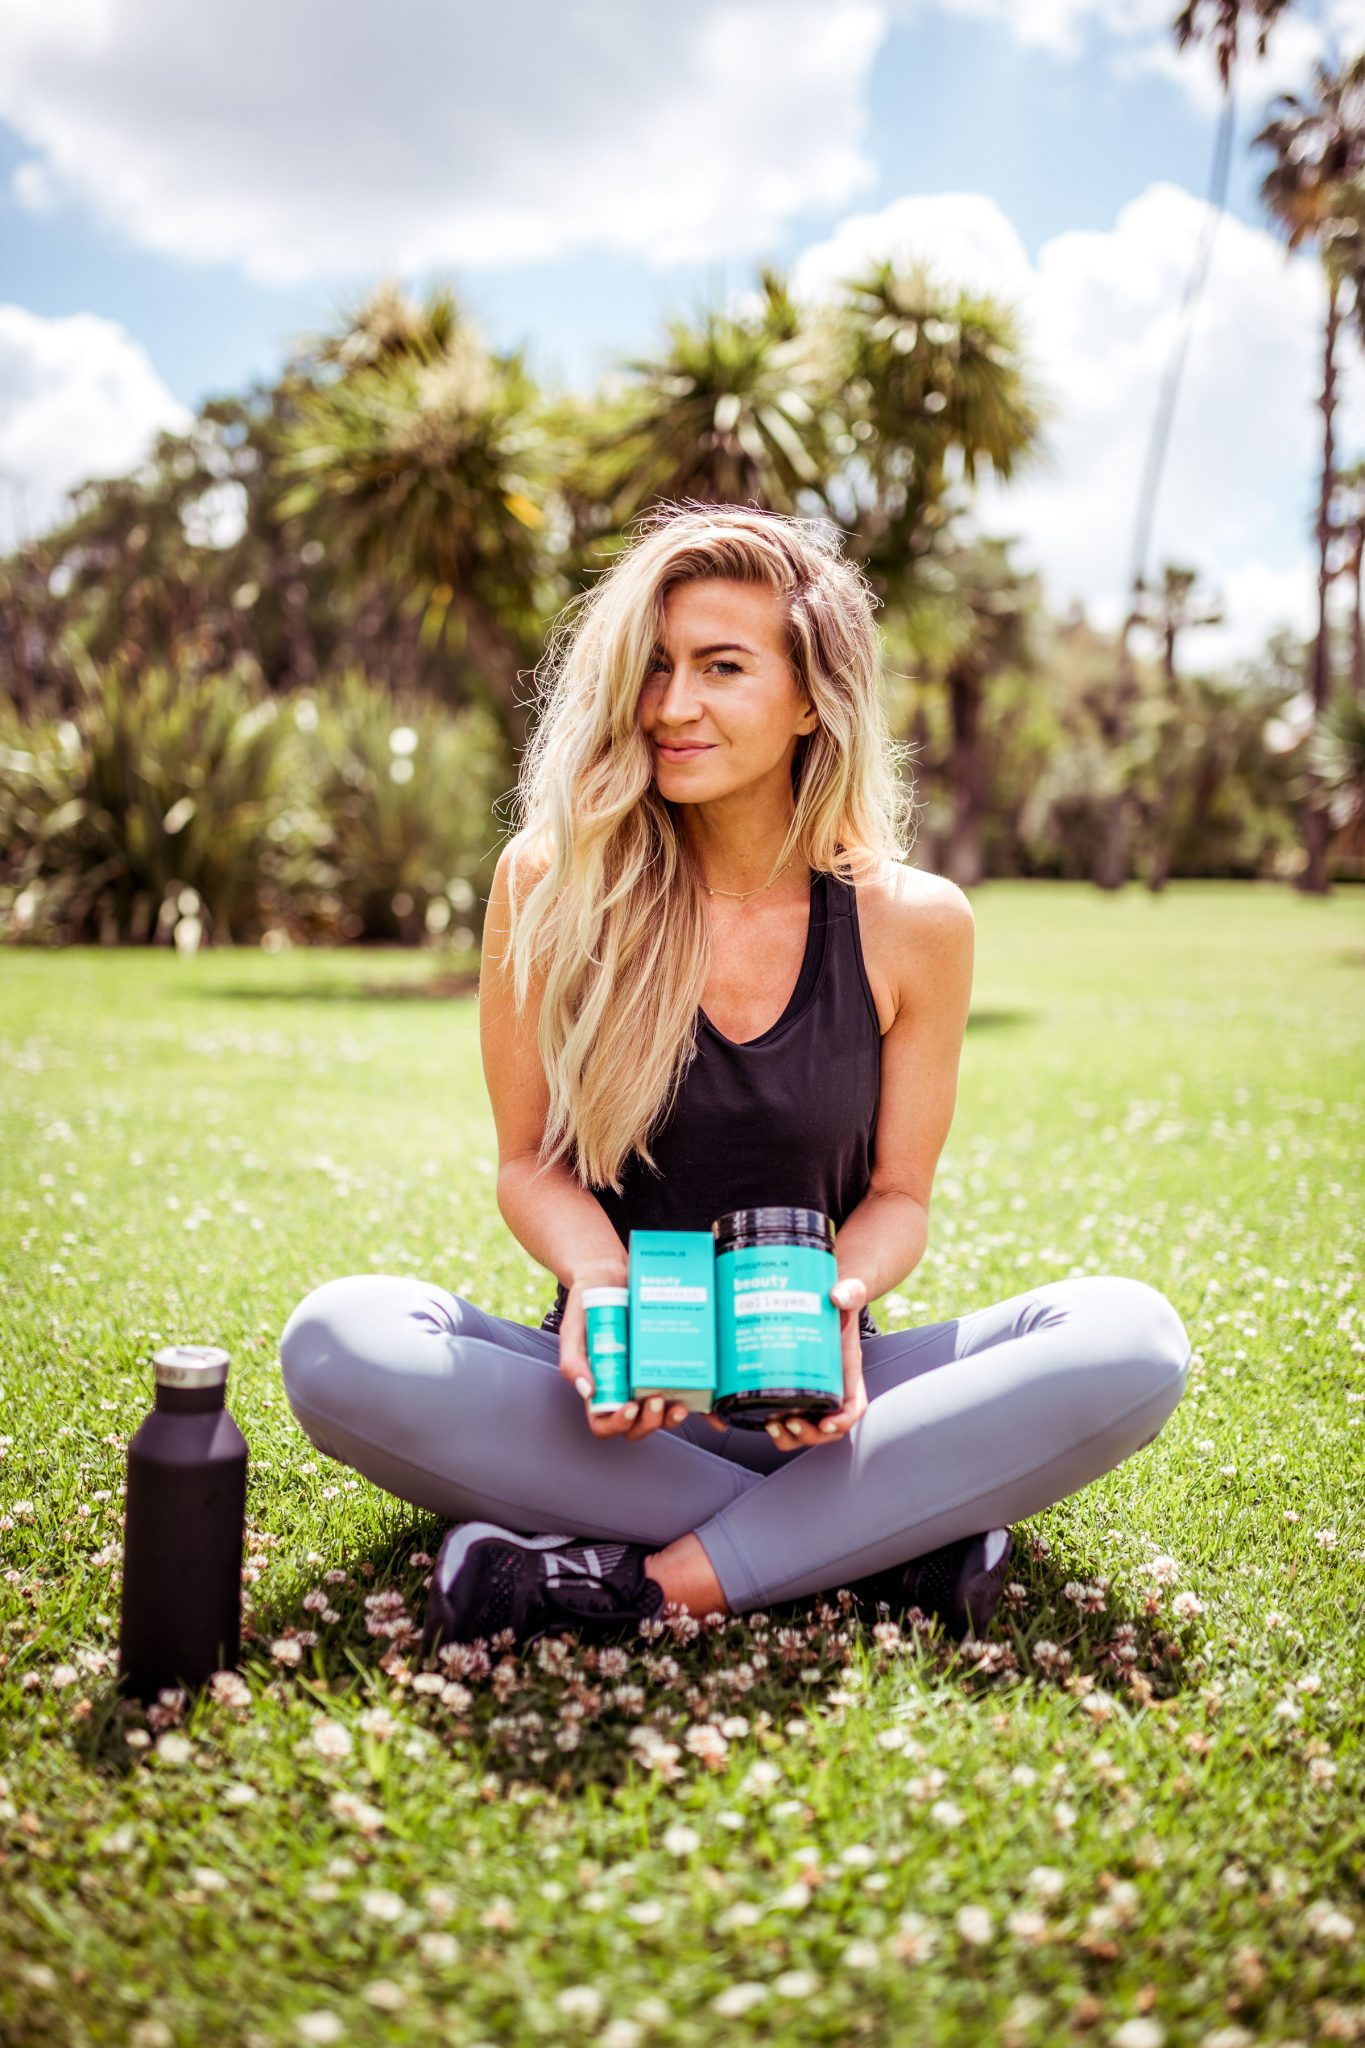 Beauty supplements I'm loving for working out